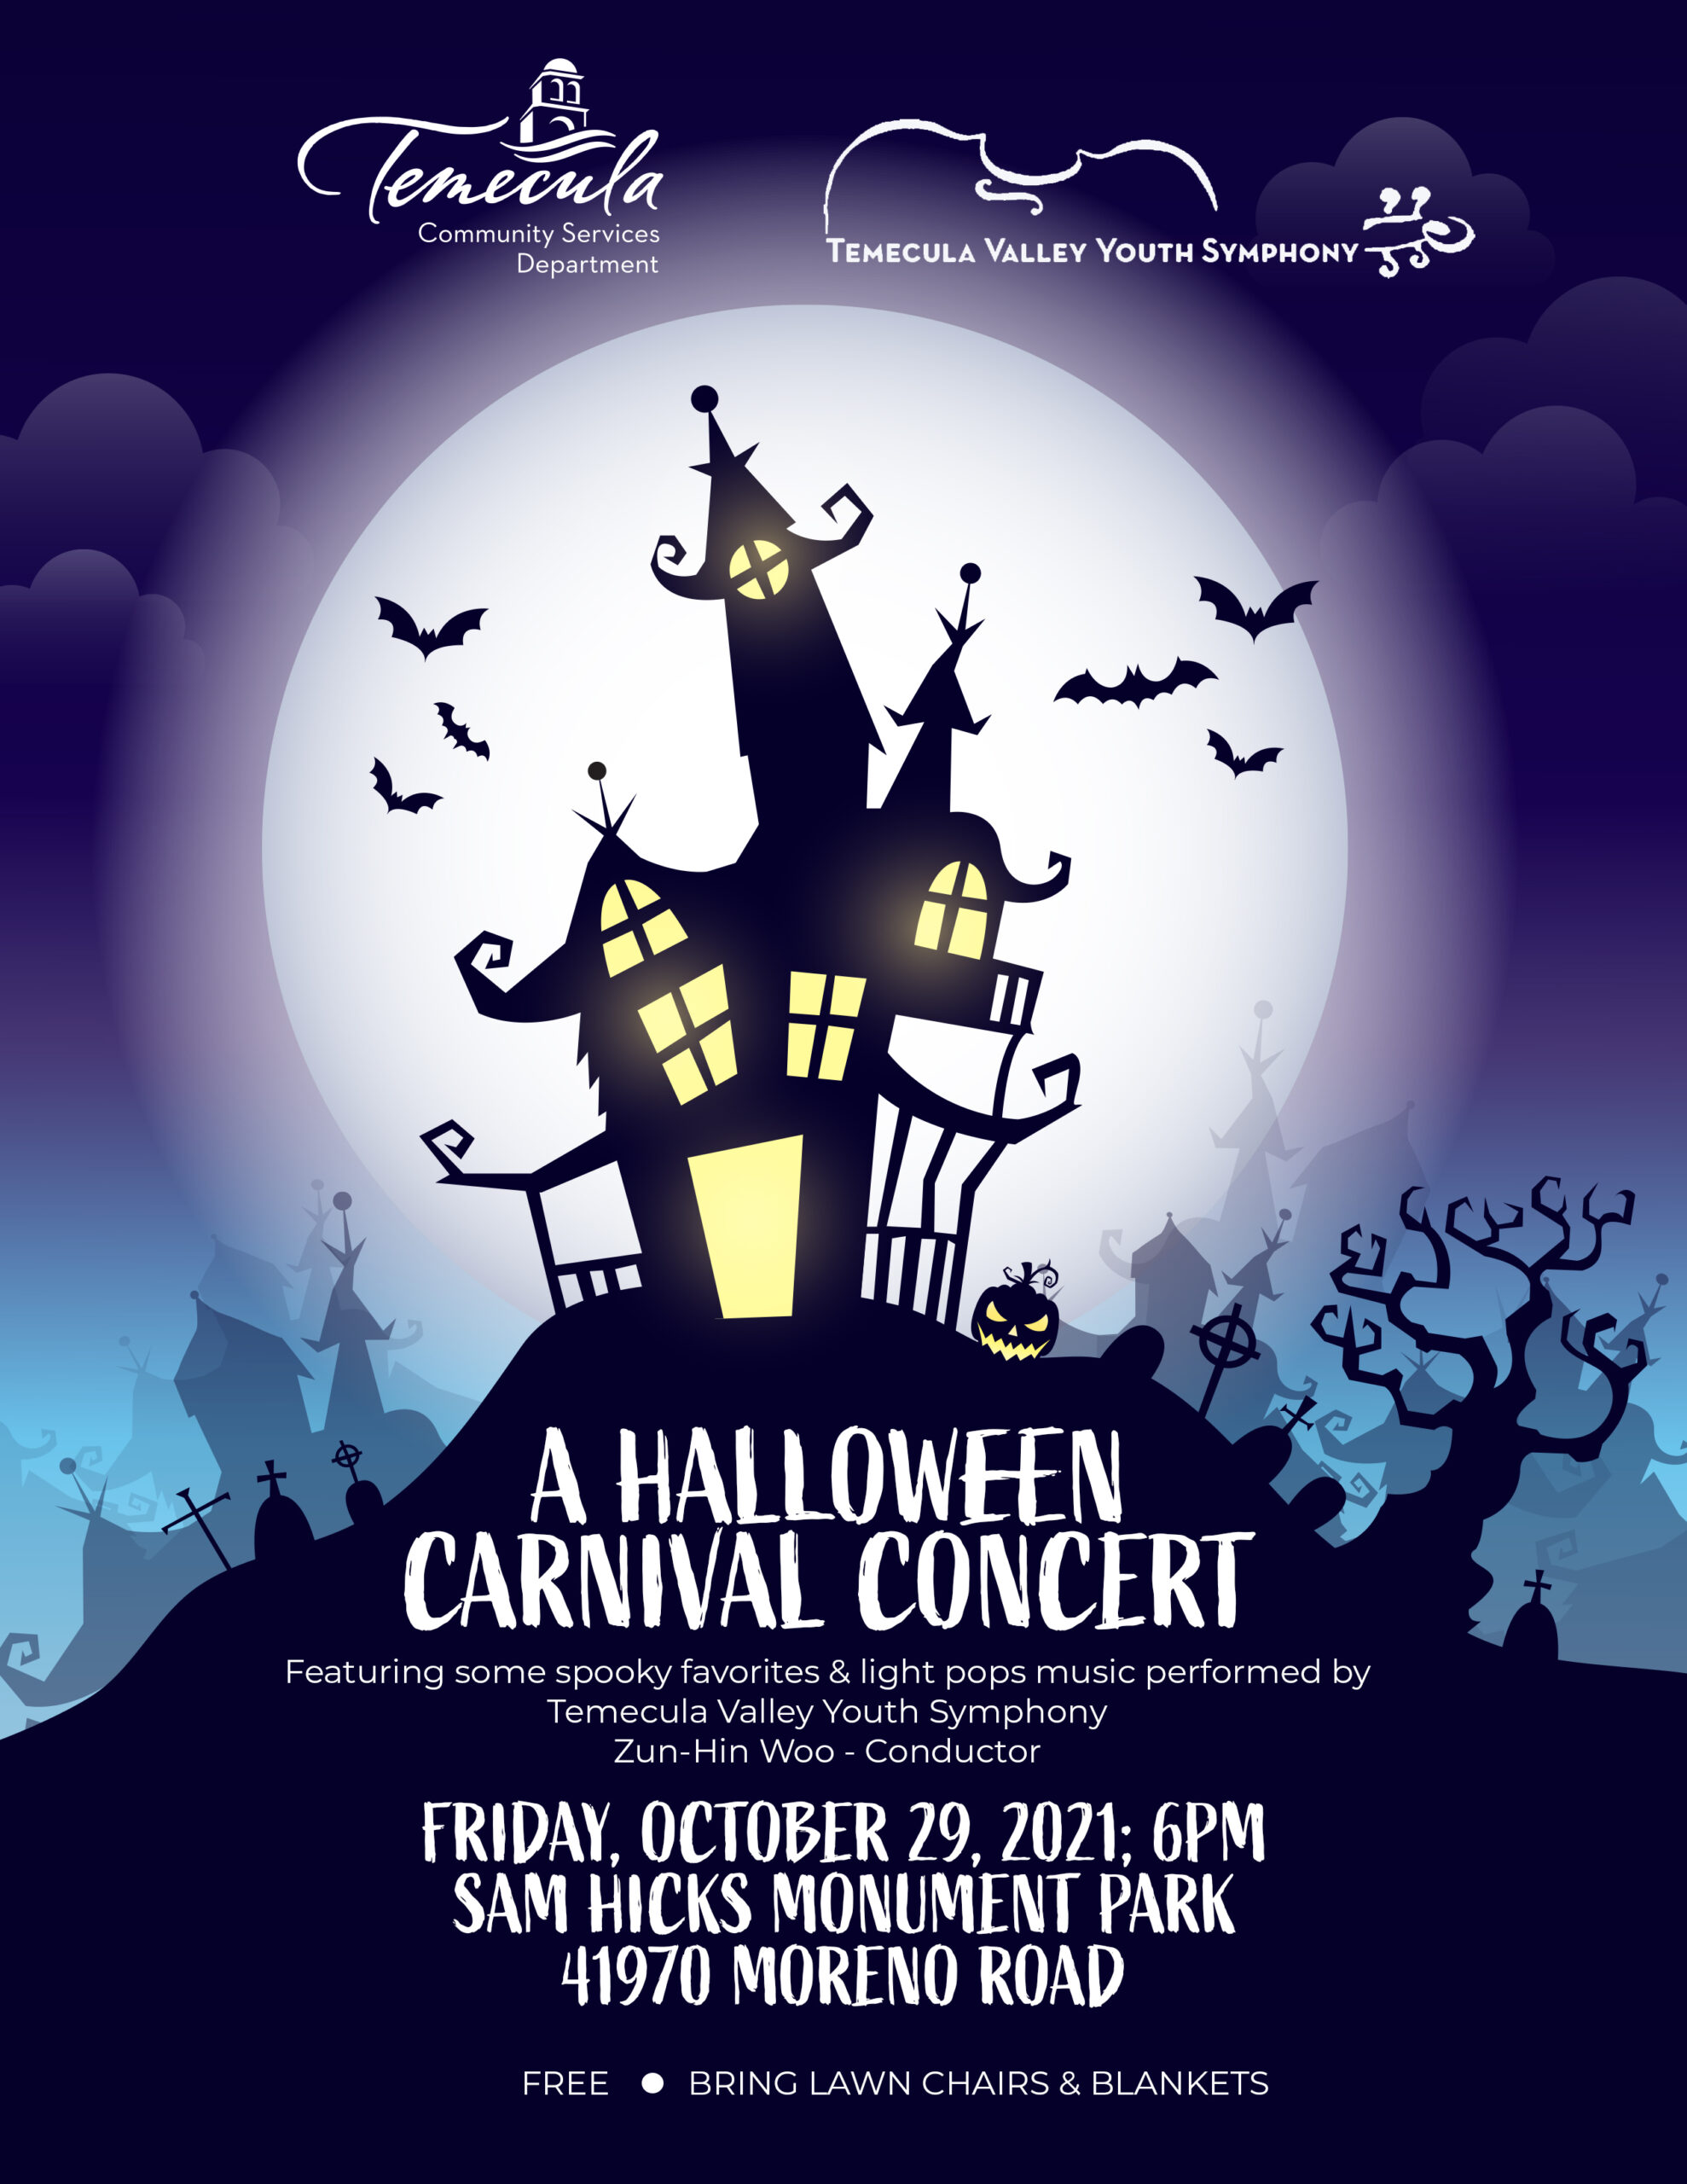 Halloween Carnival concert with Temecula Valley Youth Symphony